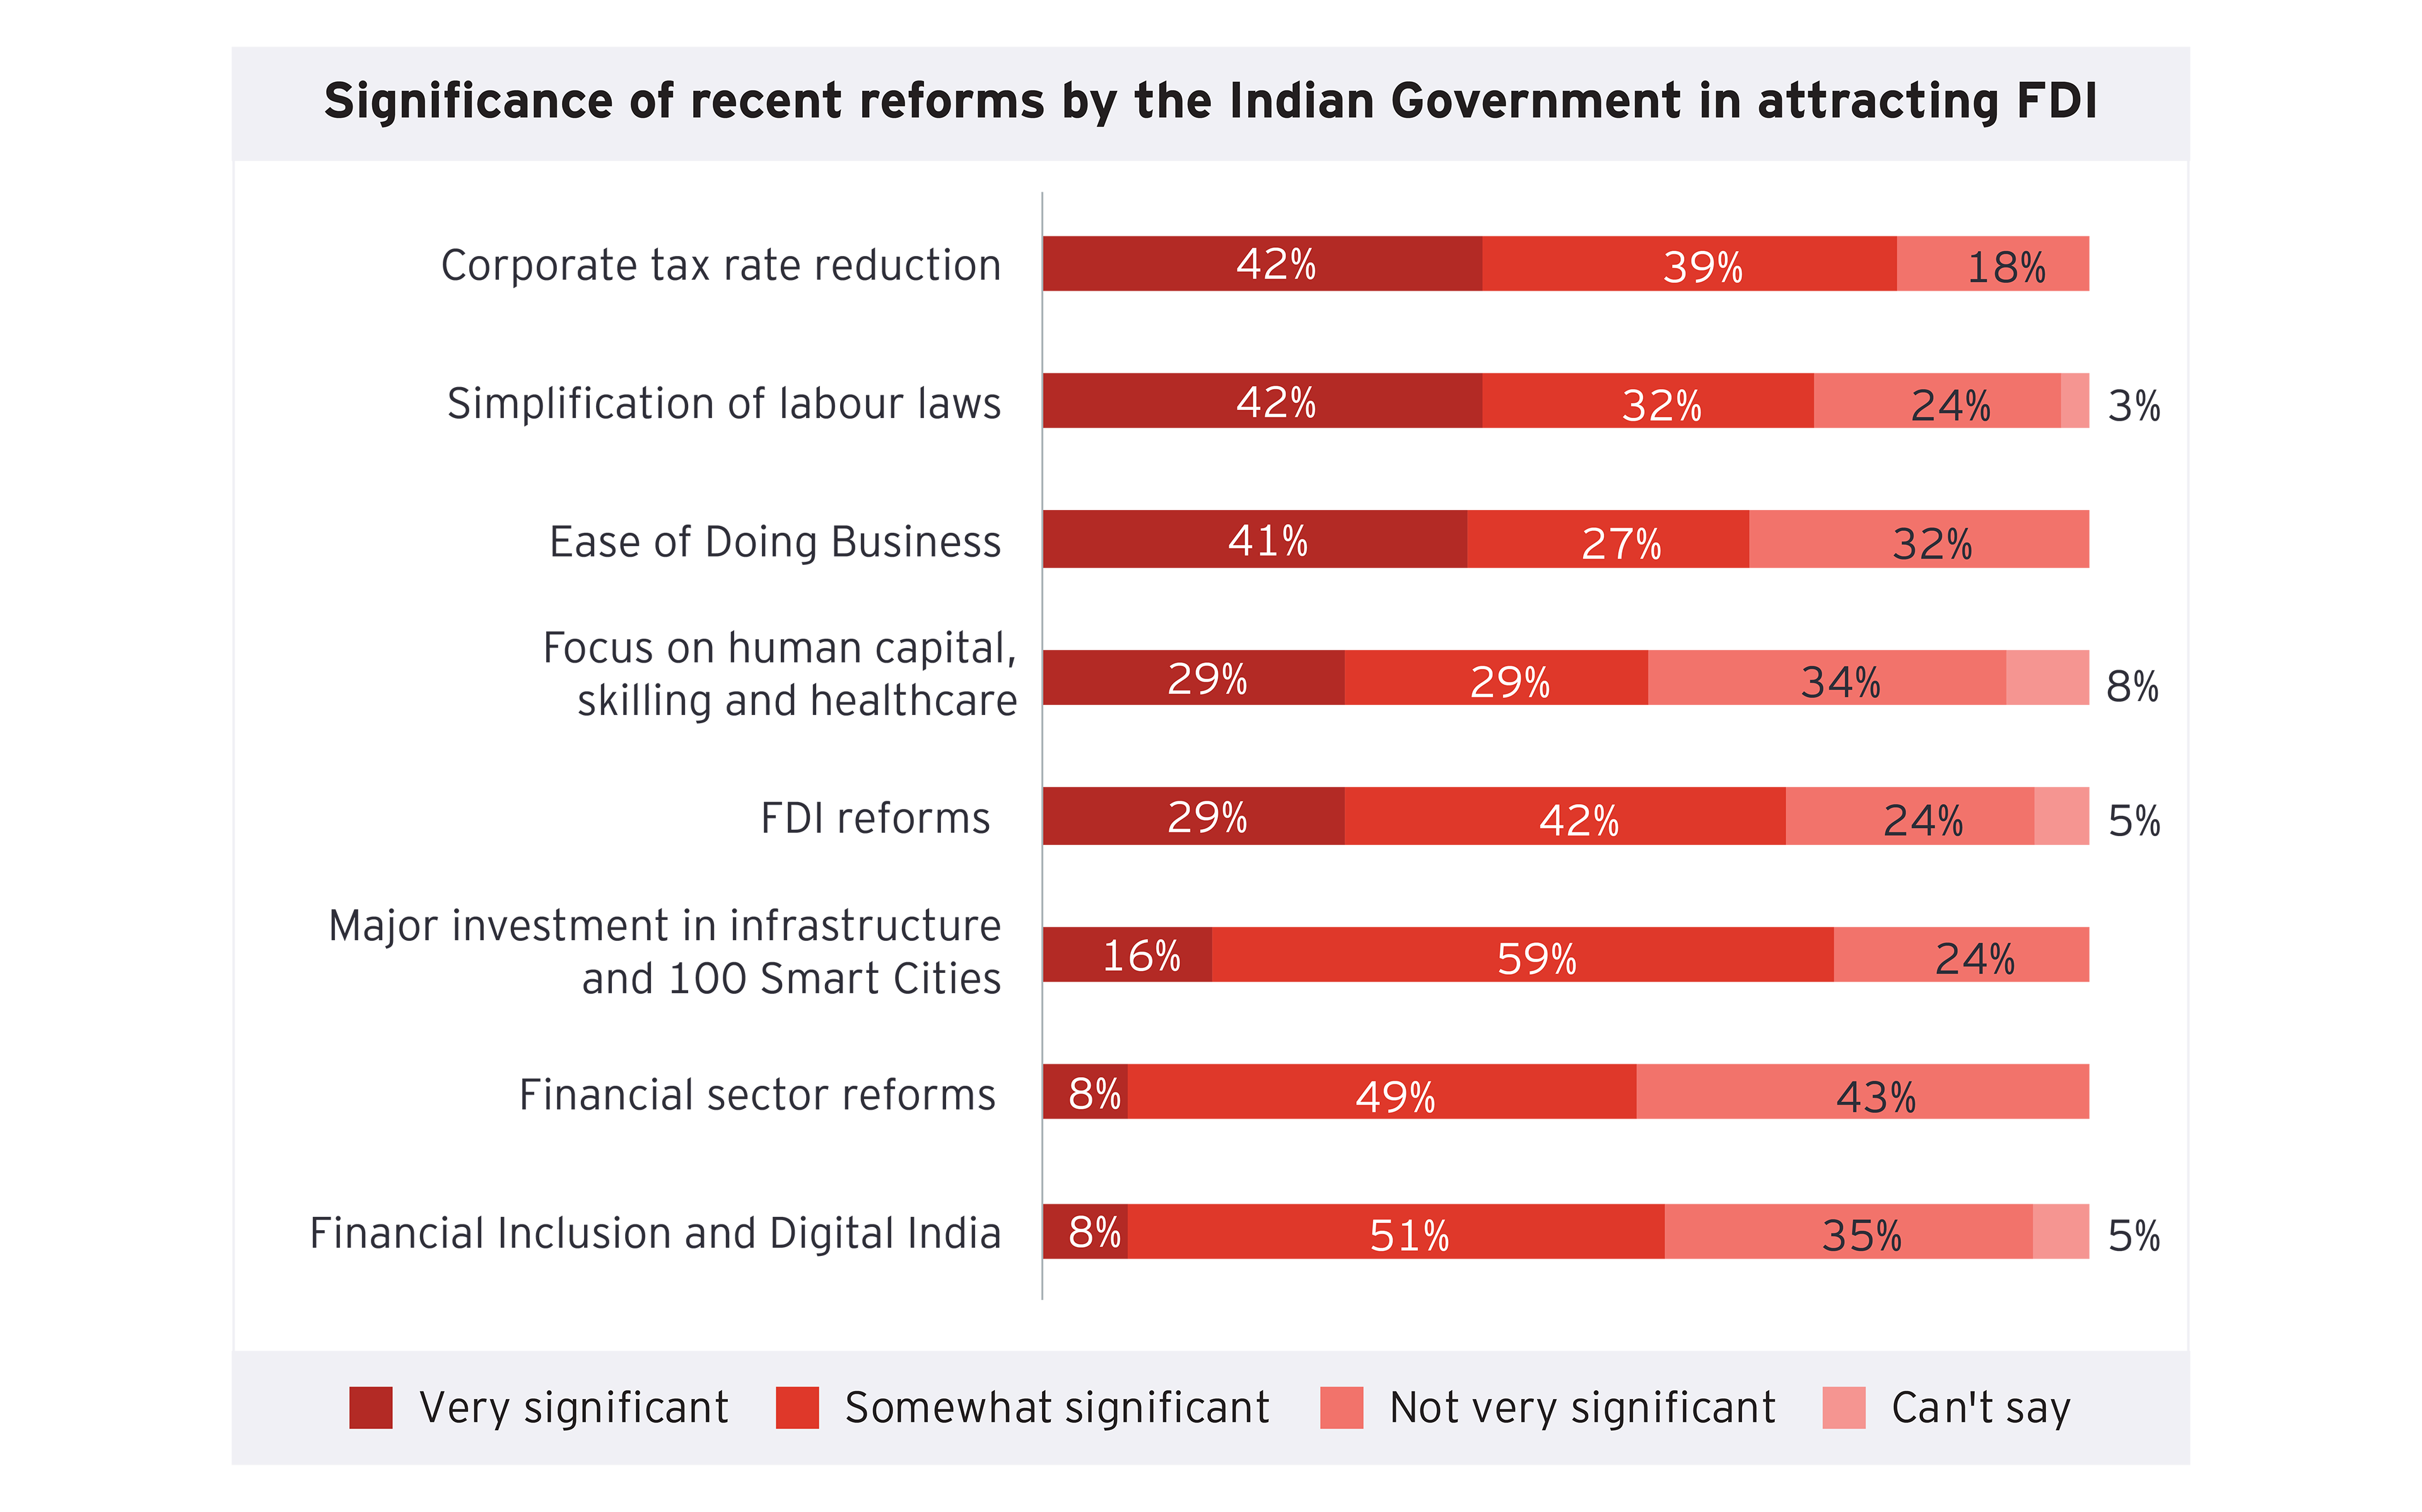 Significant of recent reforms by the Indian government in attracting FDI